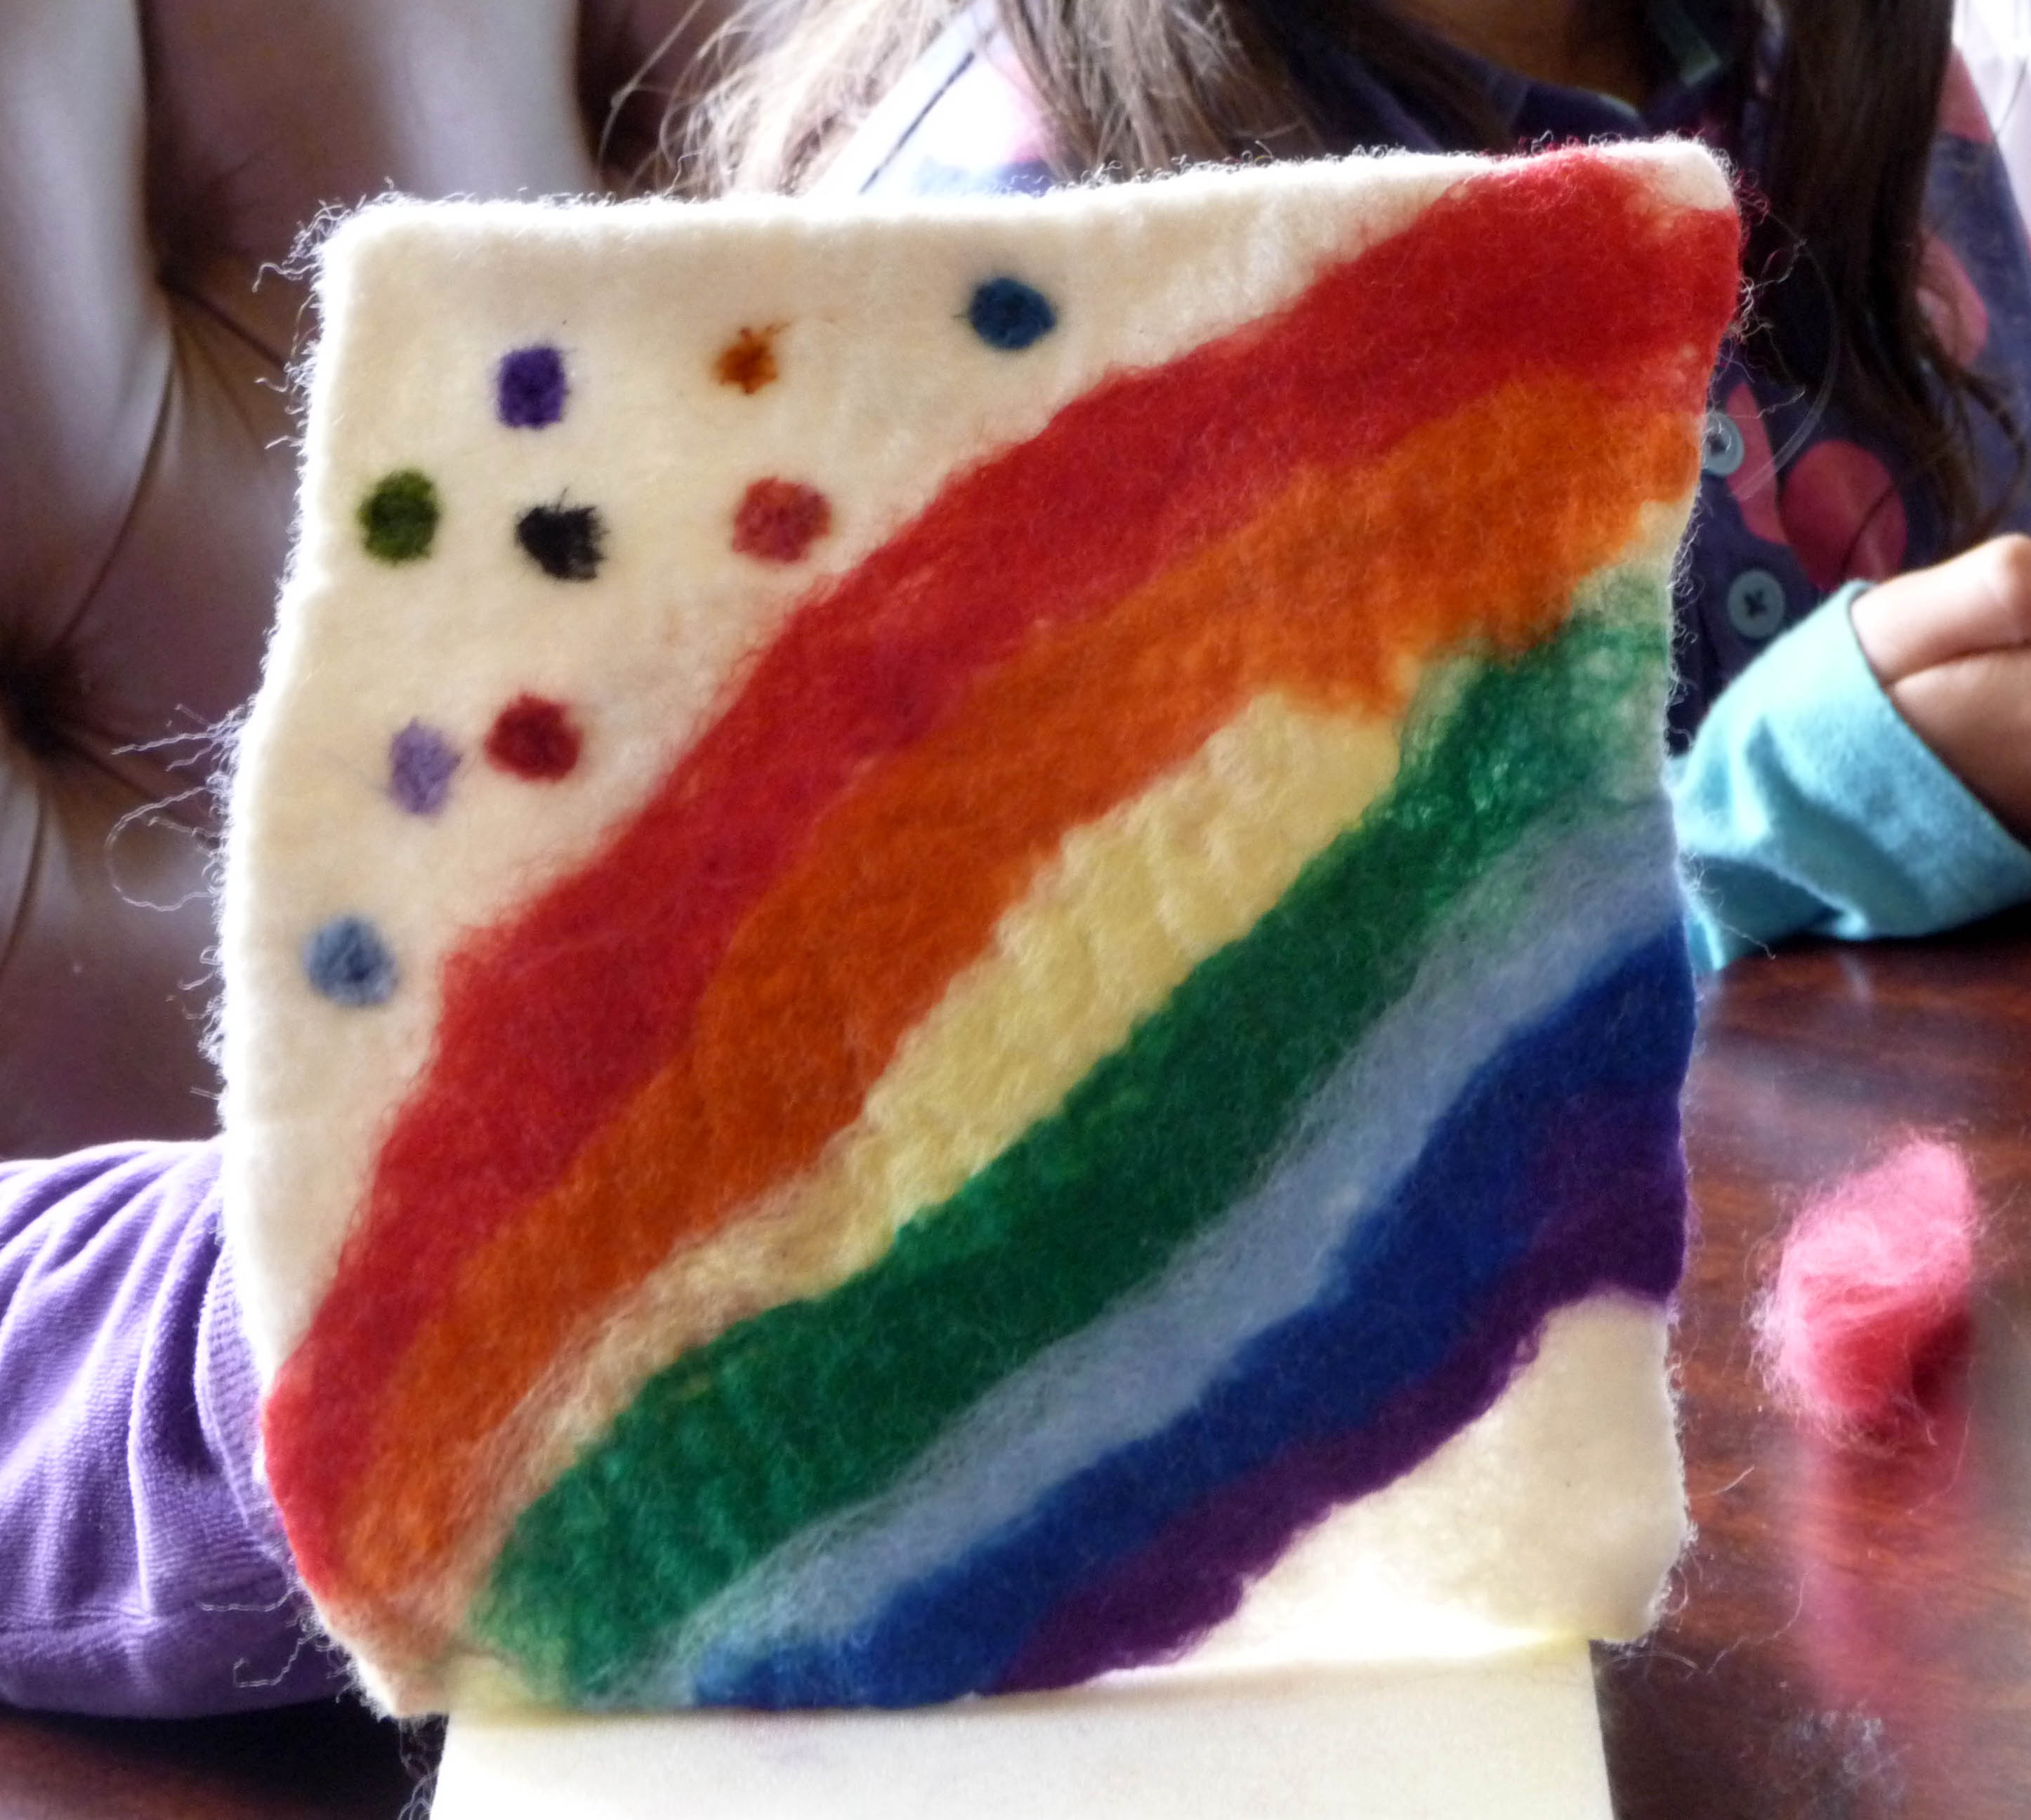 felt picture made by YE at NW Regional Day 2014